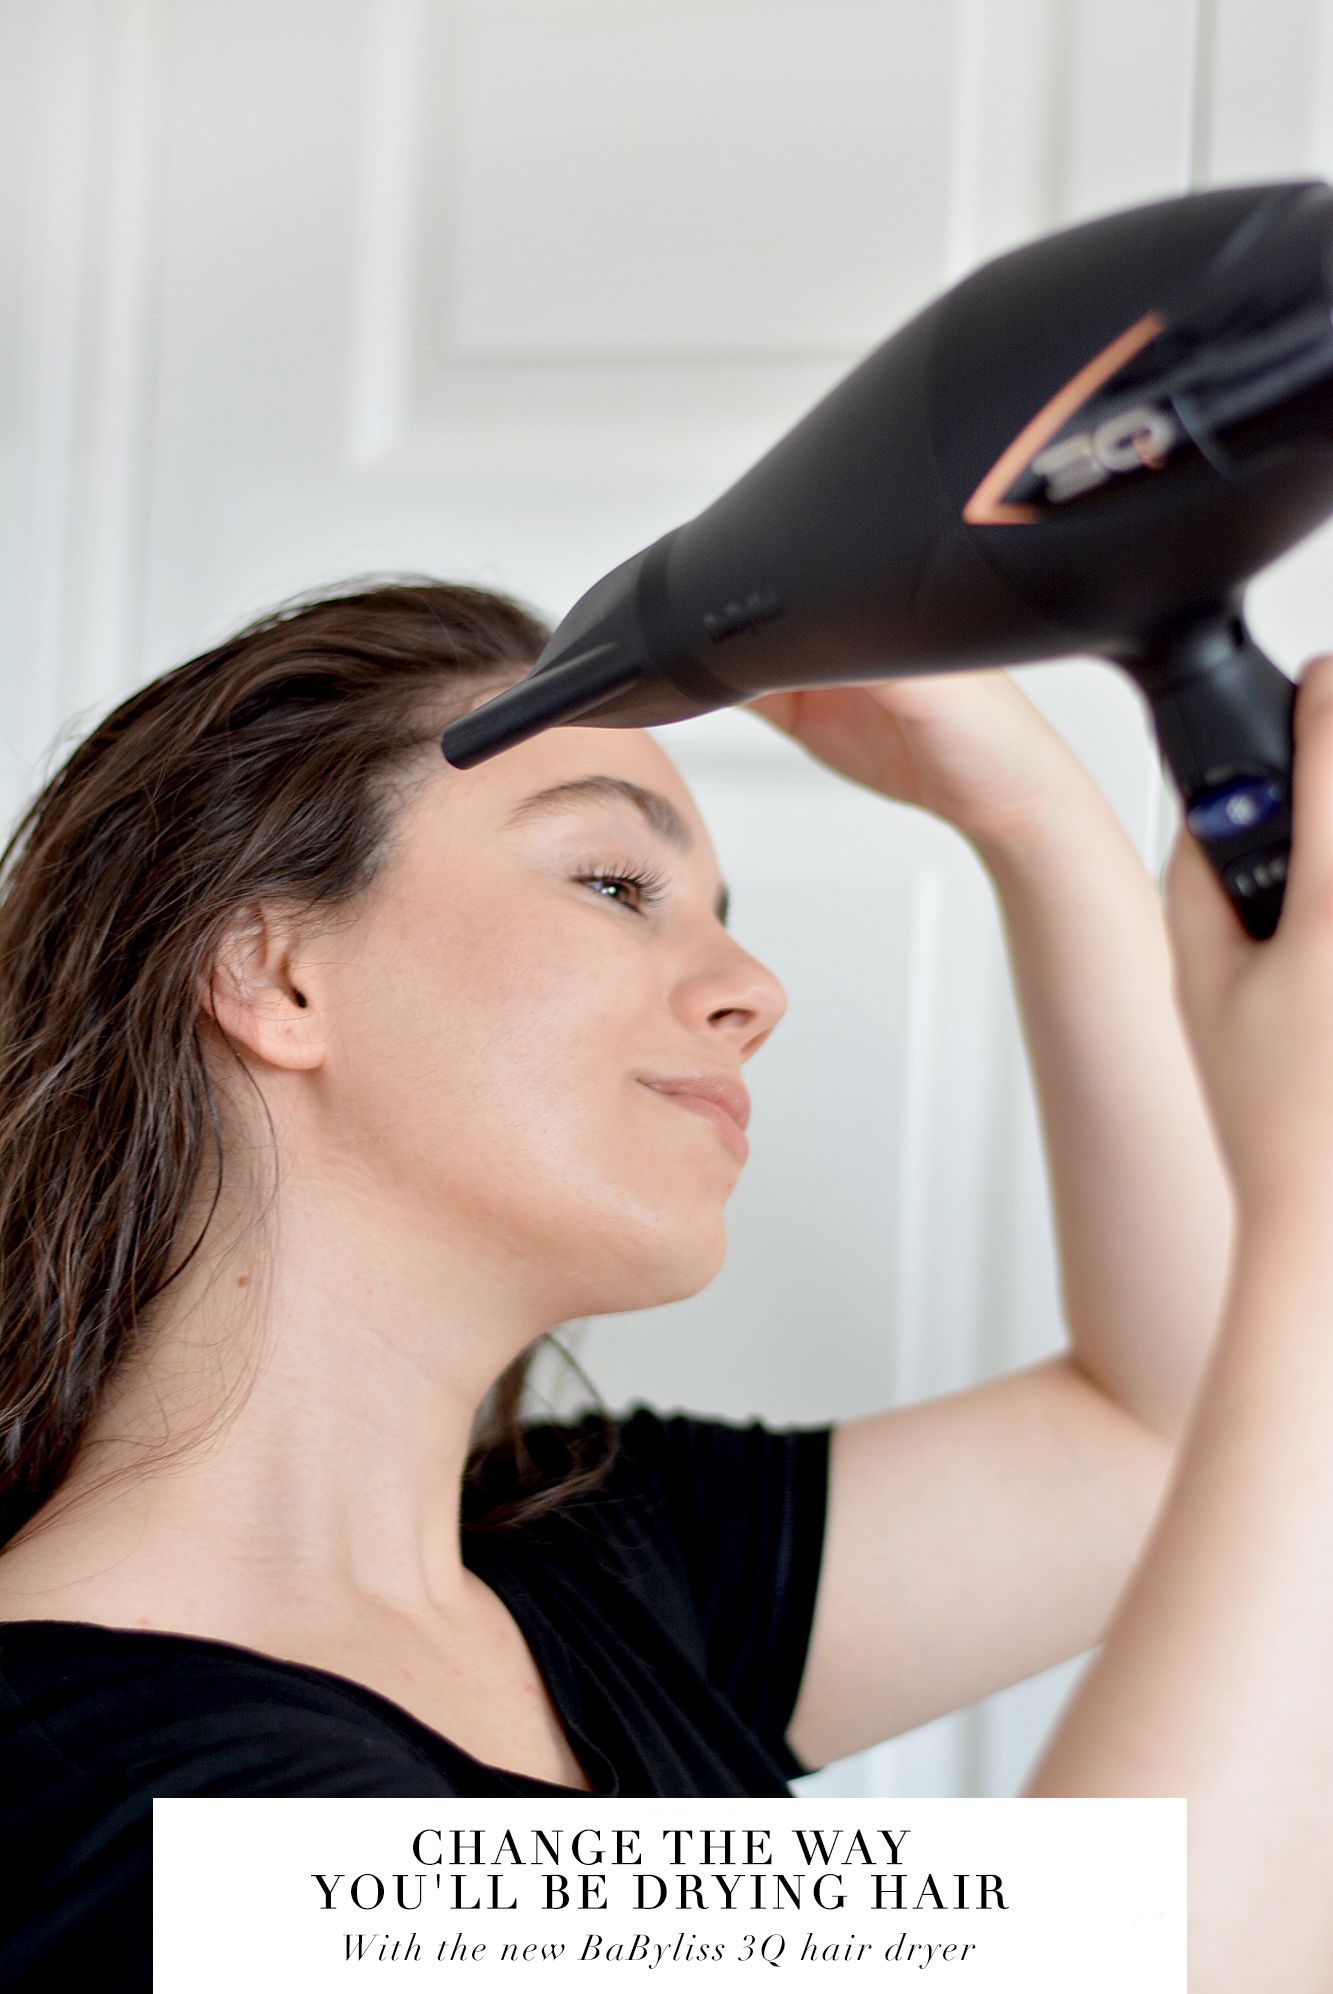 THE HAIR DRYER THAT'S CHANGING THE GAME